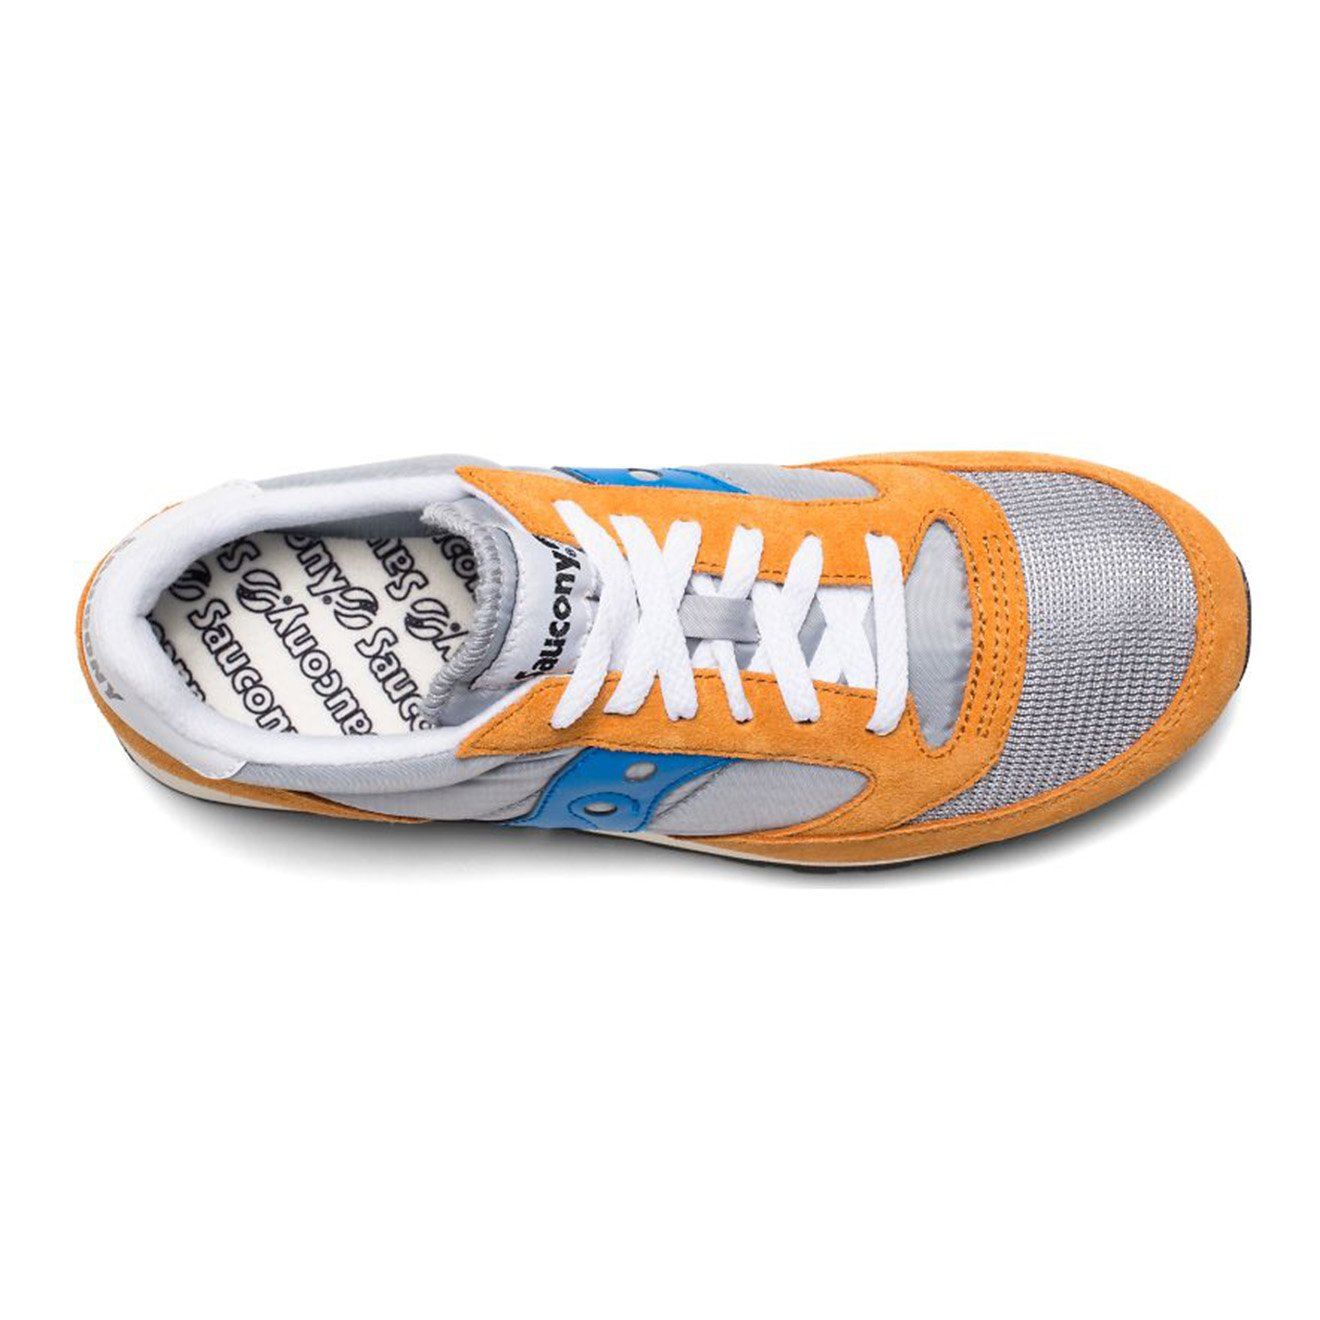 official photos 220cd ec42e Saucony Jazz Original Vintage Trainers Orange / Grey / Blue - Yards Store